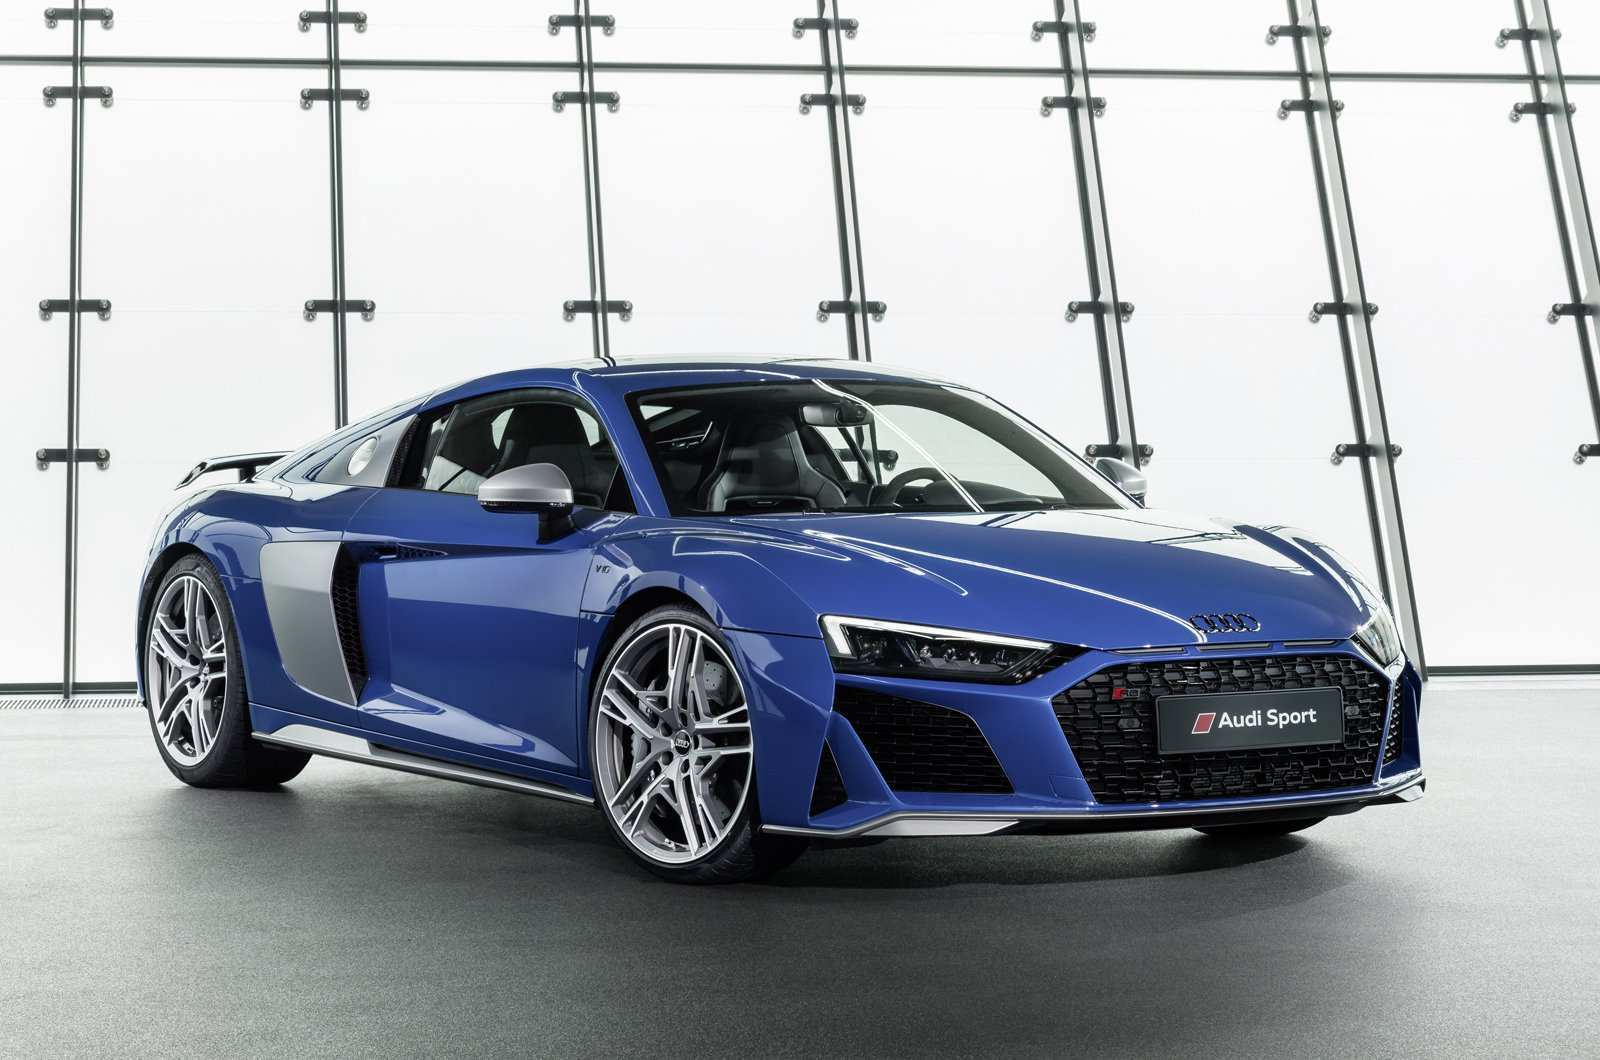 30 Best Review The R8 Audi 2019 Review And Price Release Date with The R8 Audi 2019 Review And Price